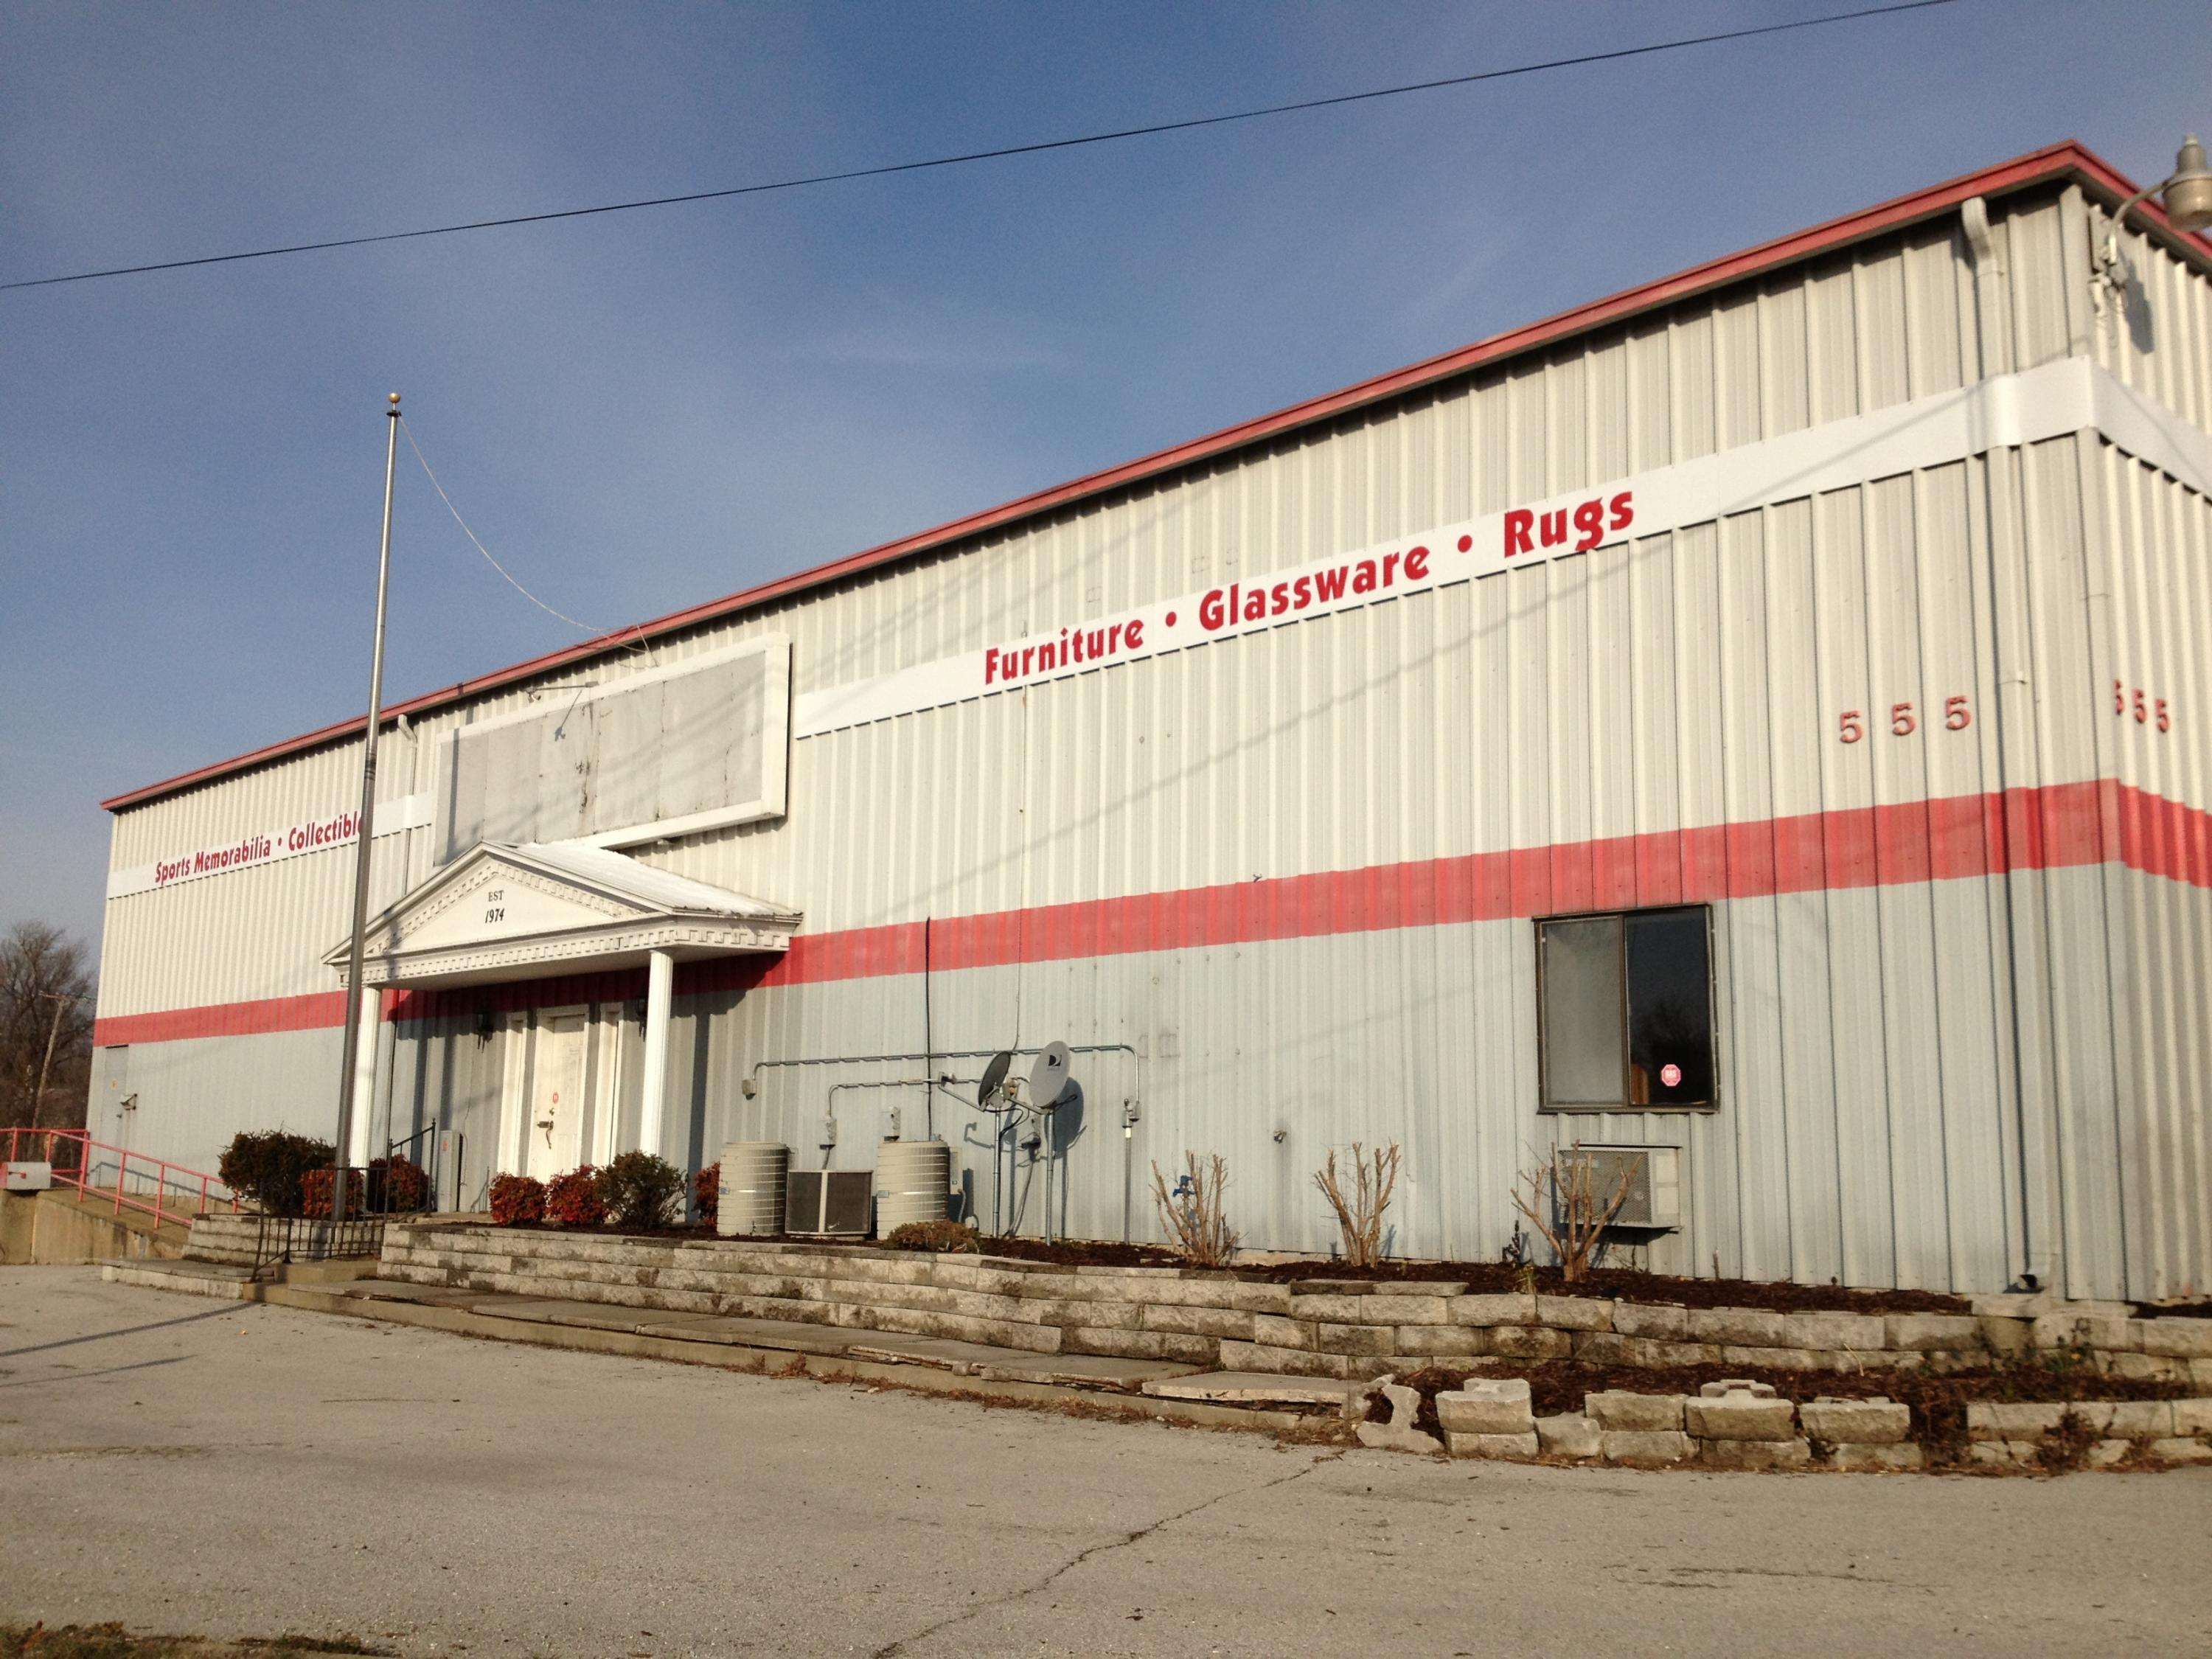 In Springfield | Bedroom(s) Commercial Industrial $6 MLS# 60095415 |  Springfield Commercial Industrial